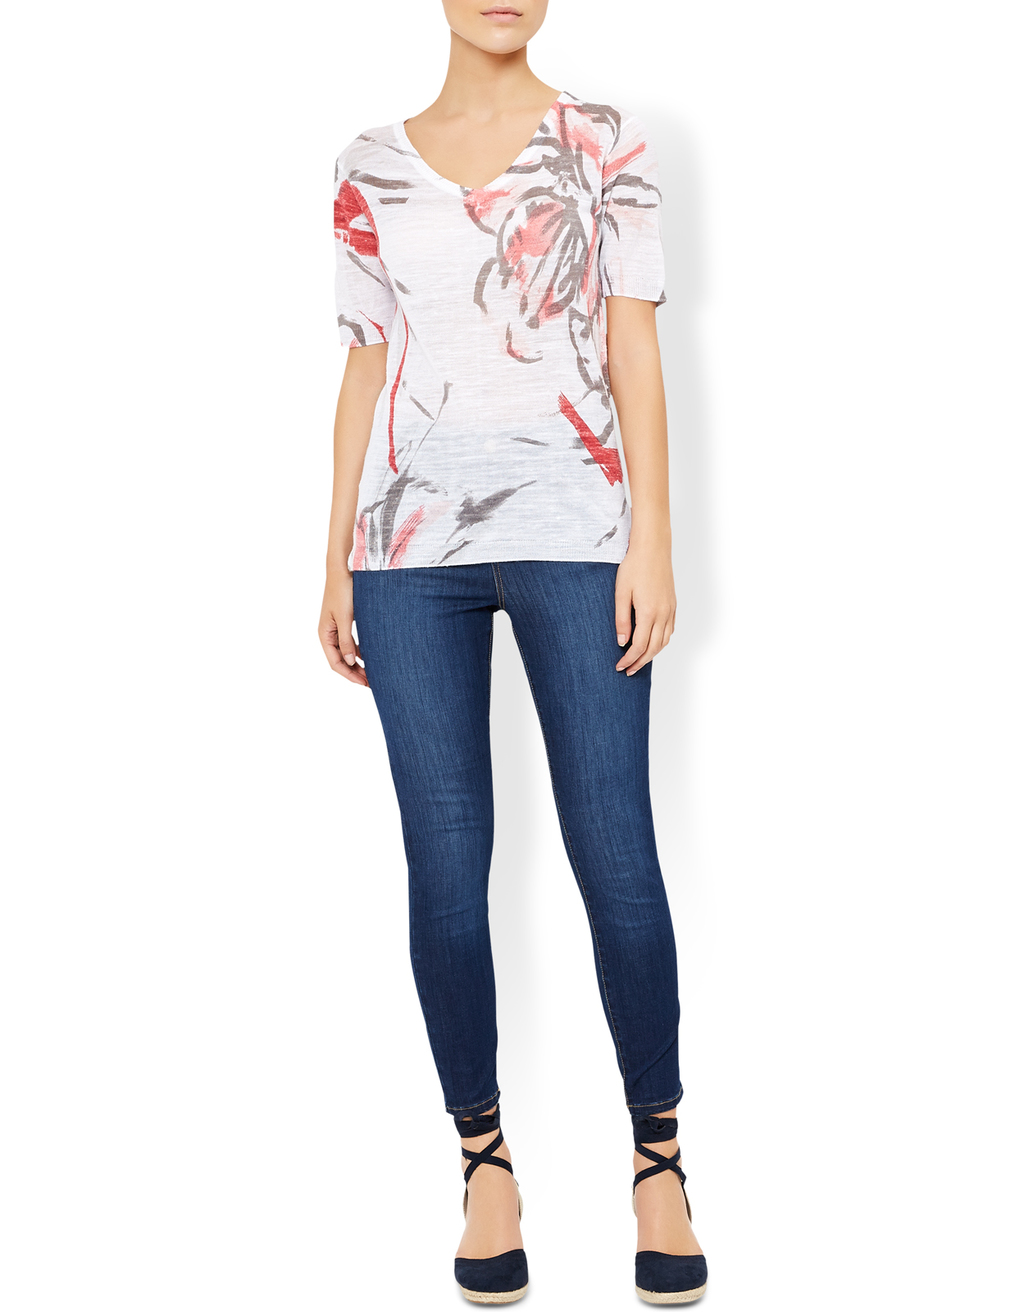 Rosely Floral Print Top - neckline: v-neck; predominant colour: white; secondary colour: true red; occasions: casual; length: standard; style: top; fibres: acrylic - mix; fit: body skimming; sleeve length: short sleeve; sleeve style: standard; pattern type: fabric; pattern: florals; texture group: other - light to midweight; pattern size: big & busy (top); multicoloured: multicoloured; season: s/s 2016; wardrobe: highlight